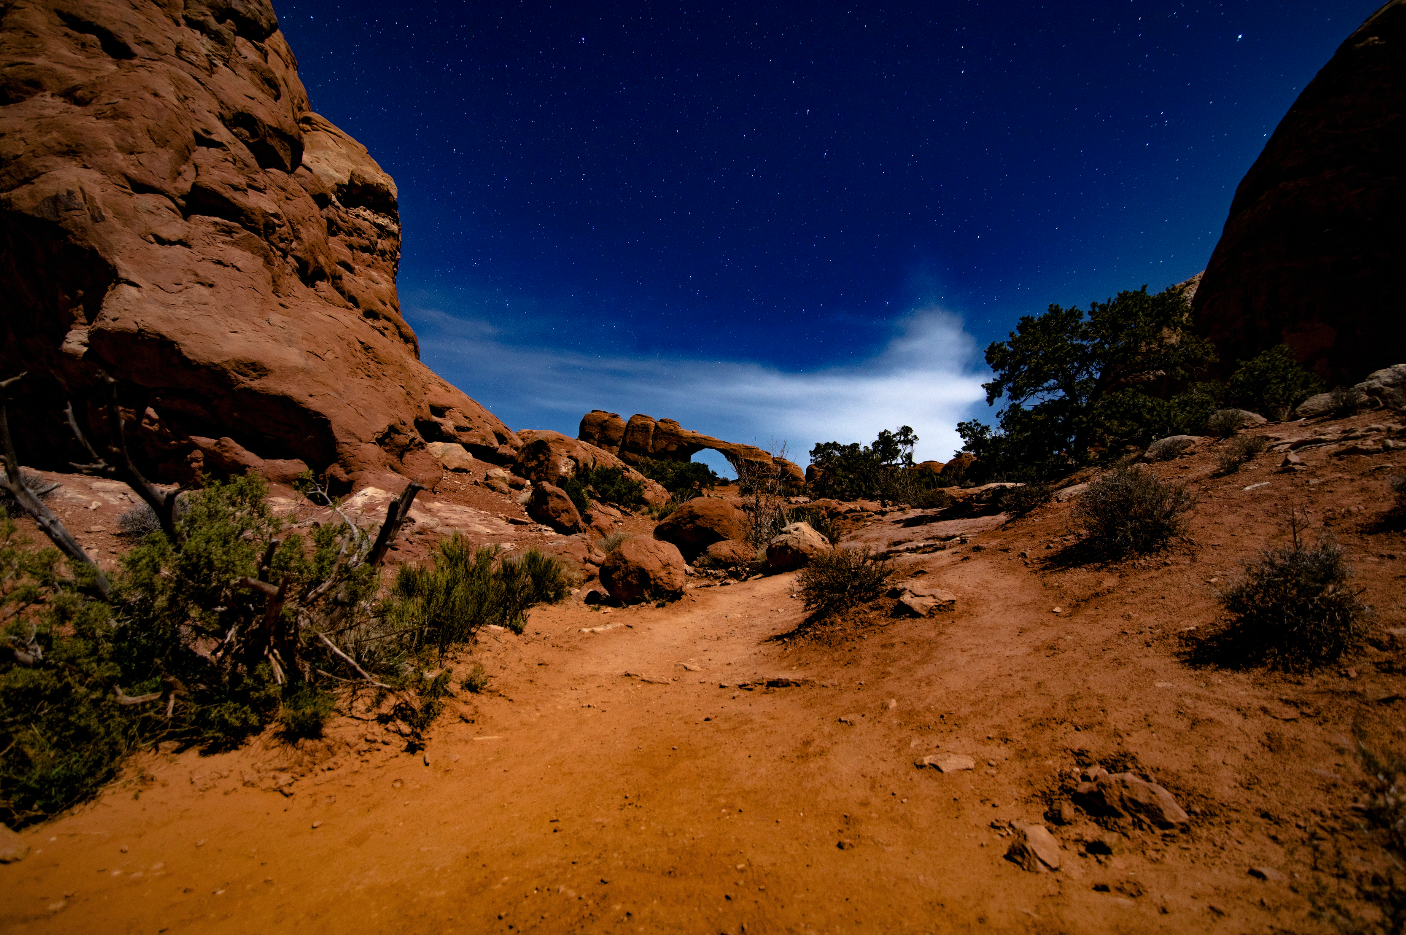 Arches National Park after dark